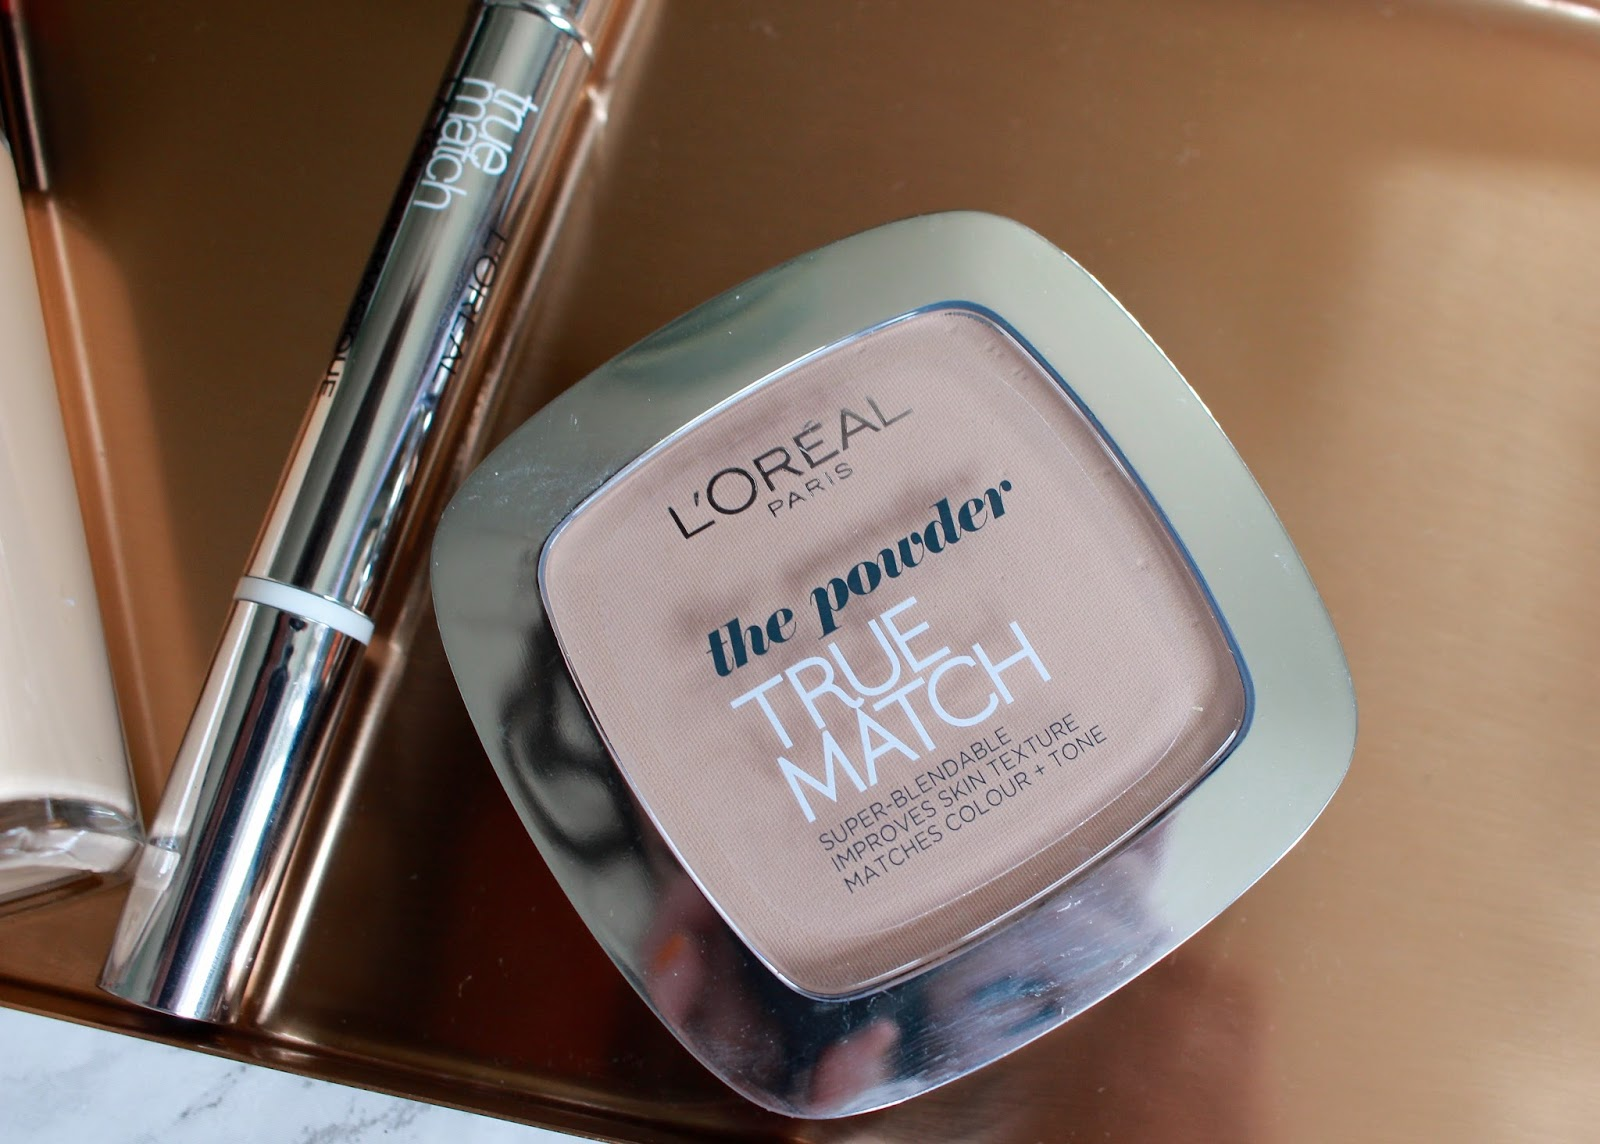 L'oreal Drugstore Face Haul